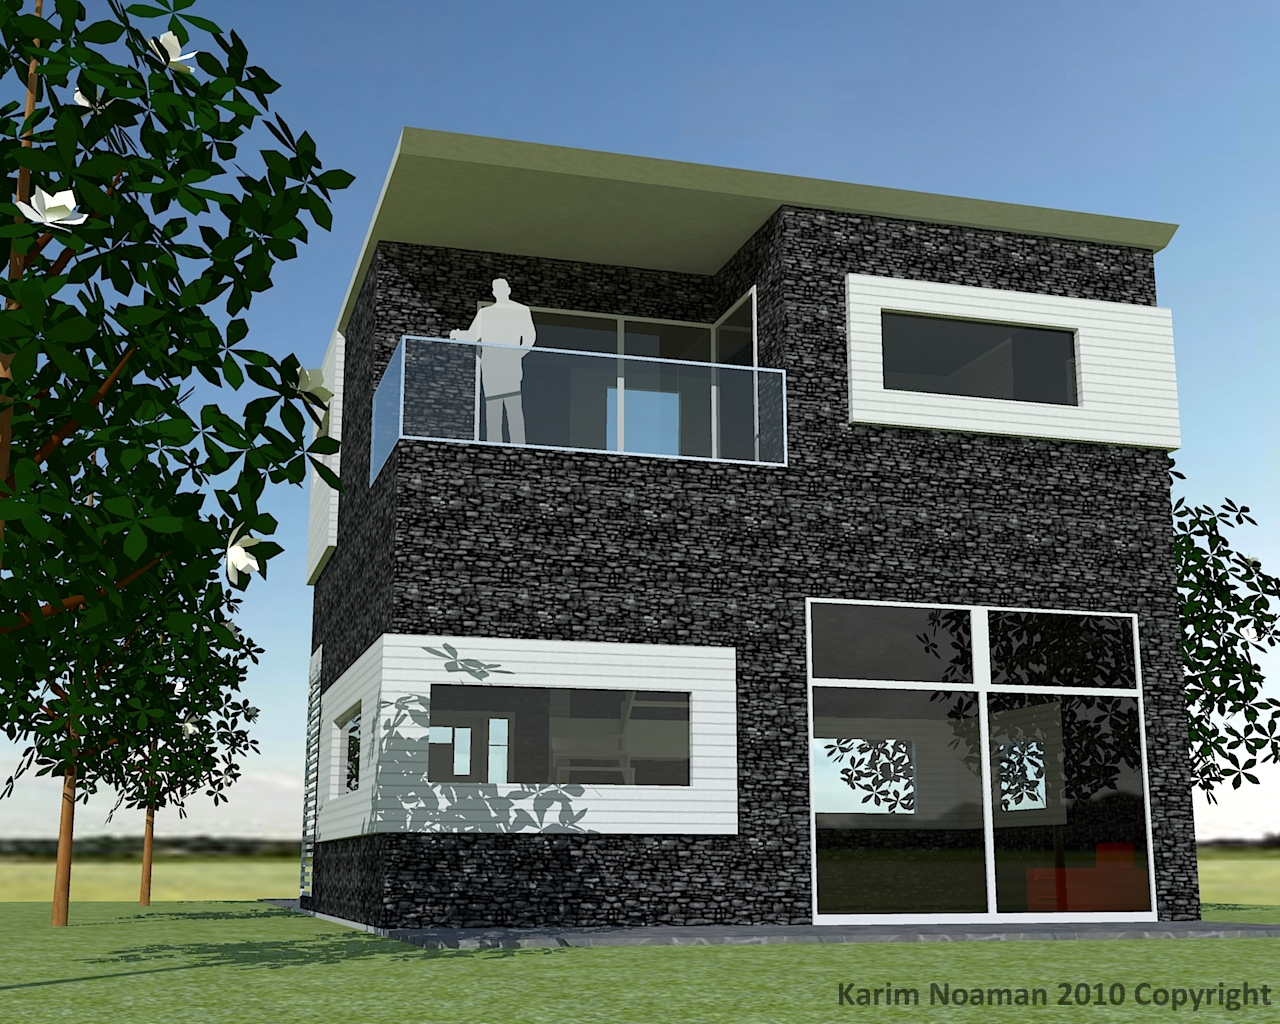 Simple modern house design by knoaman on deviantart for Simple house design